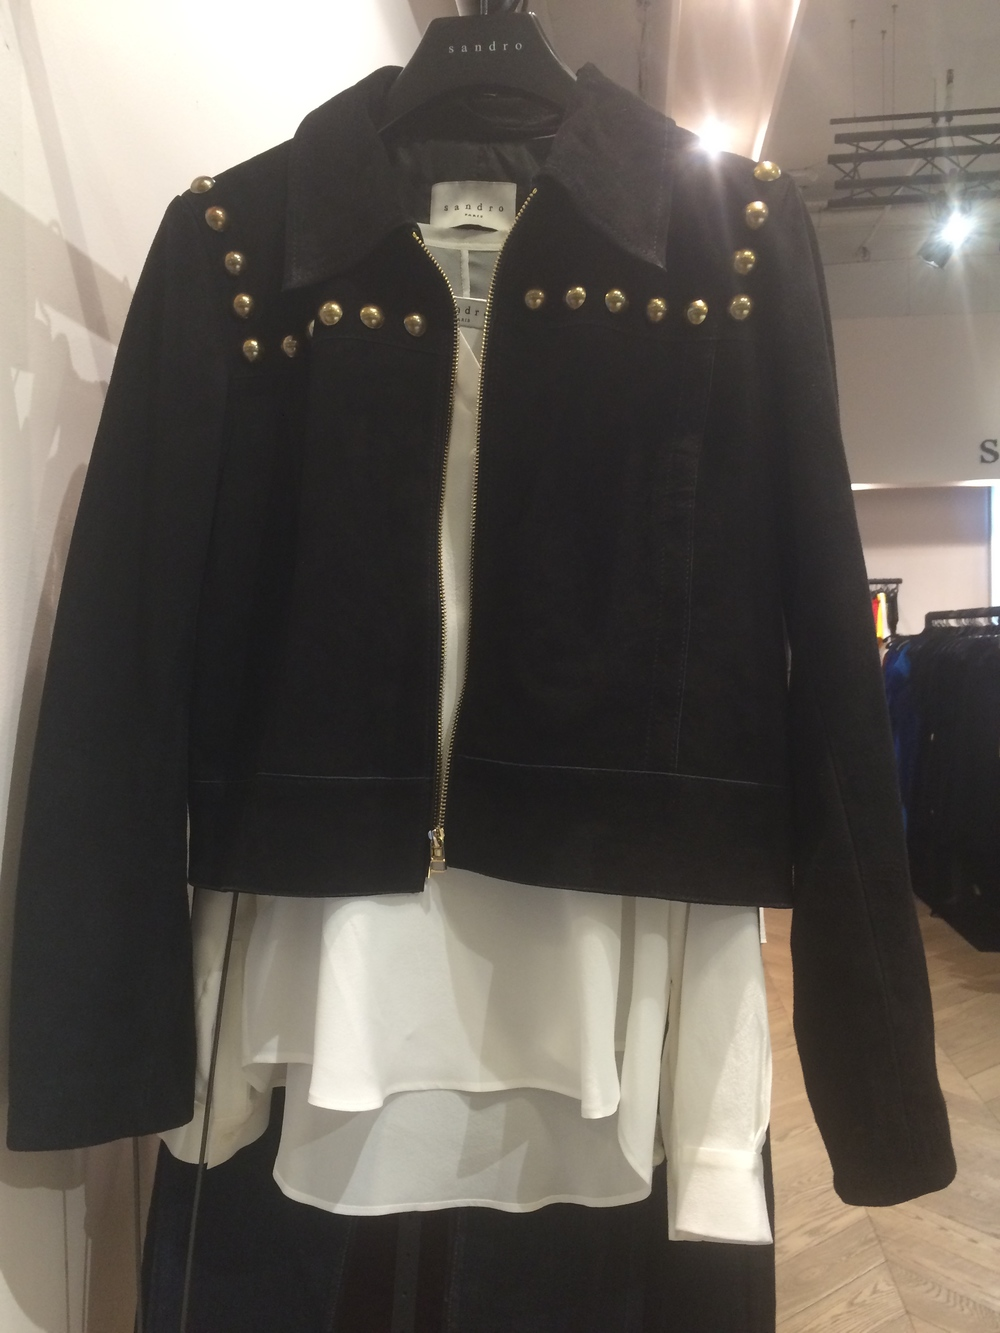 Sandro jacket with dome studs